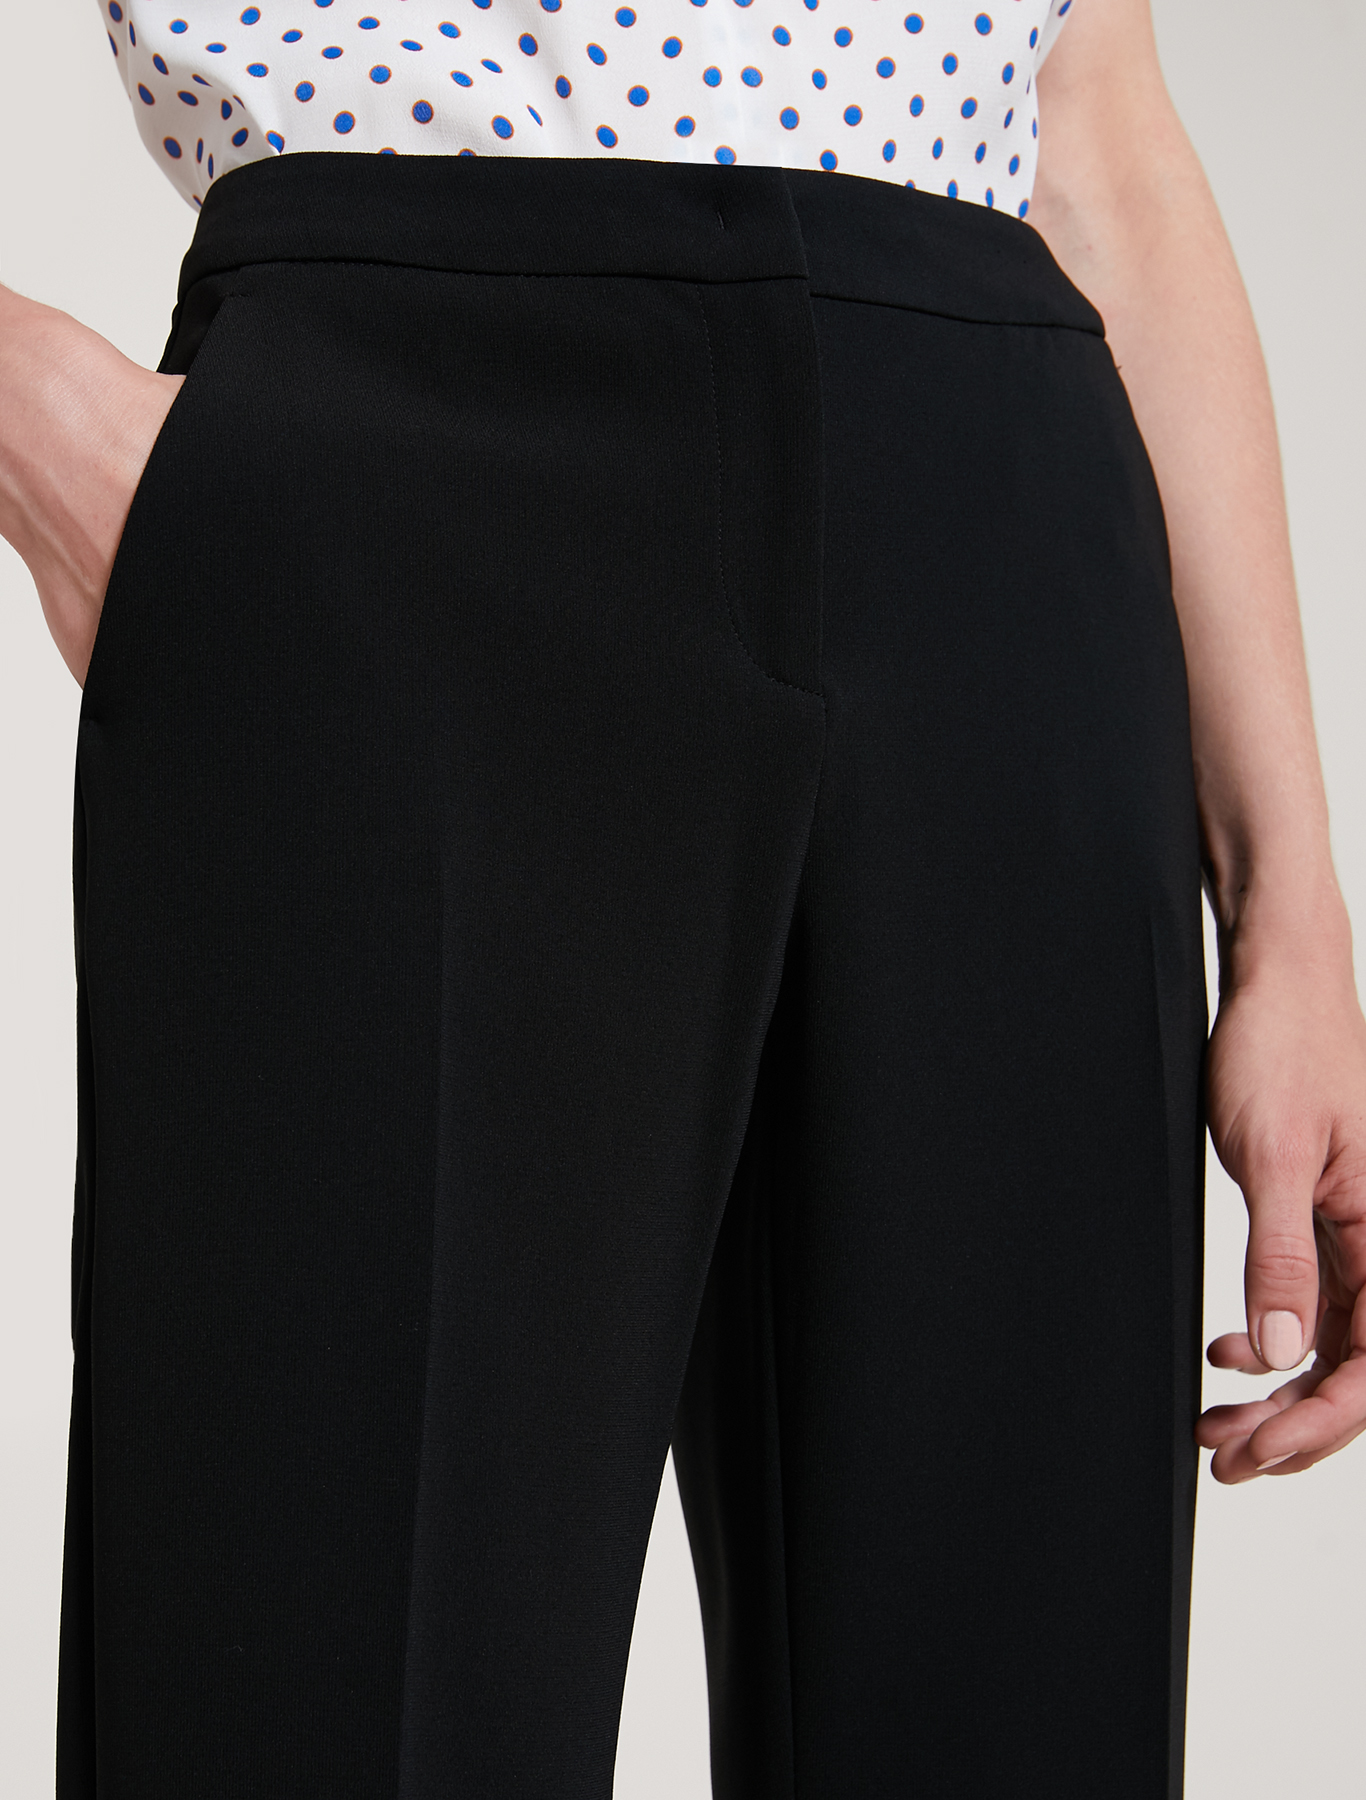 Flowing fabric trousers - black - pennyblack